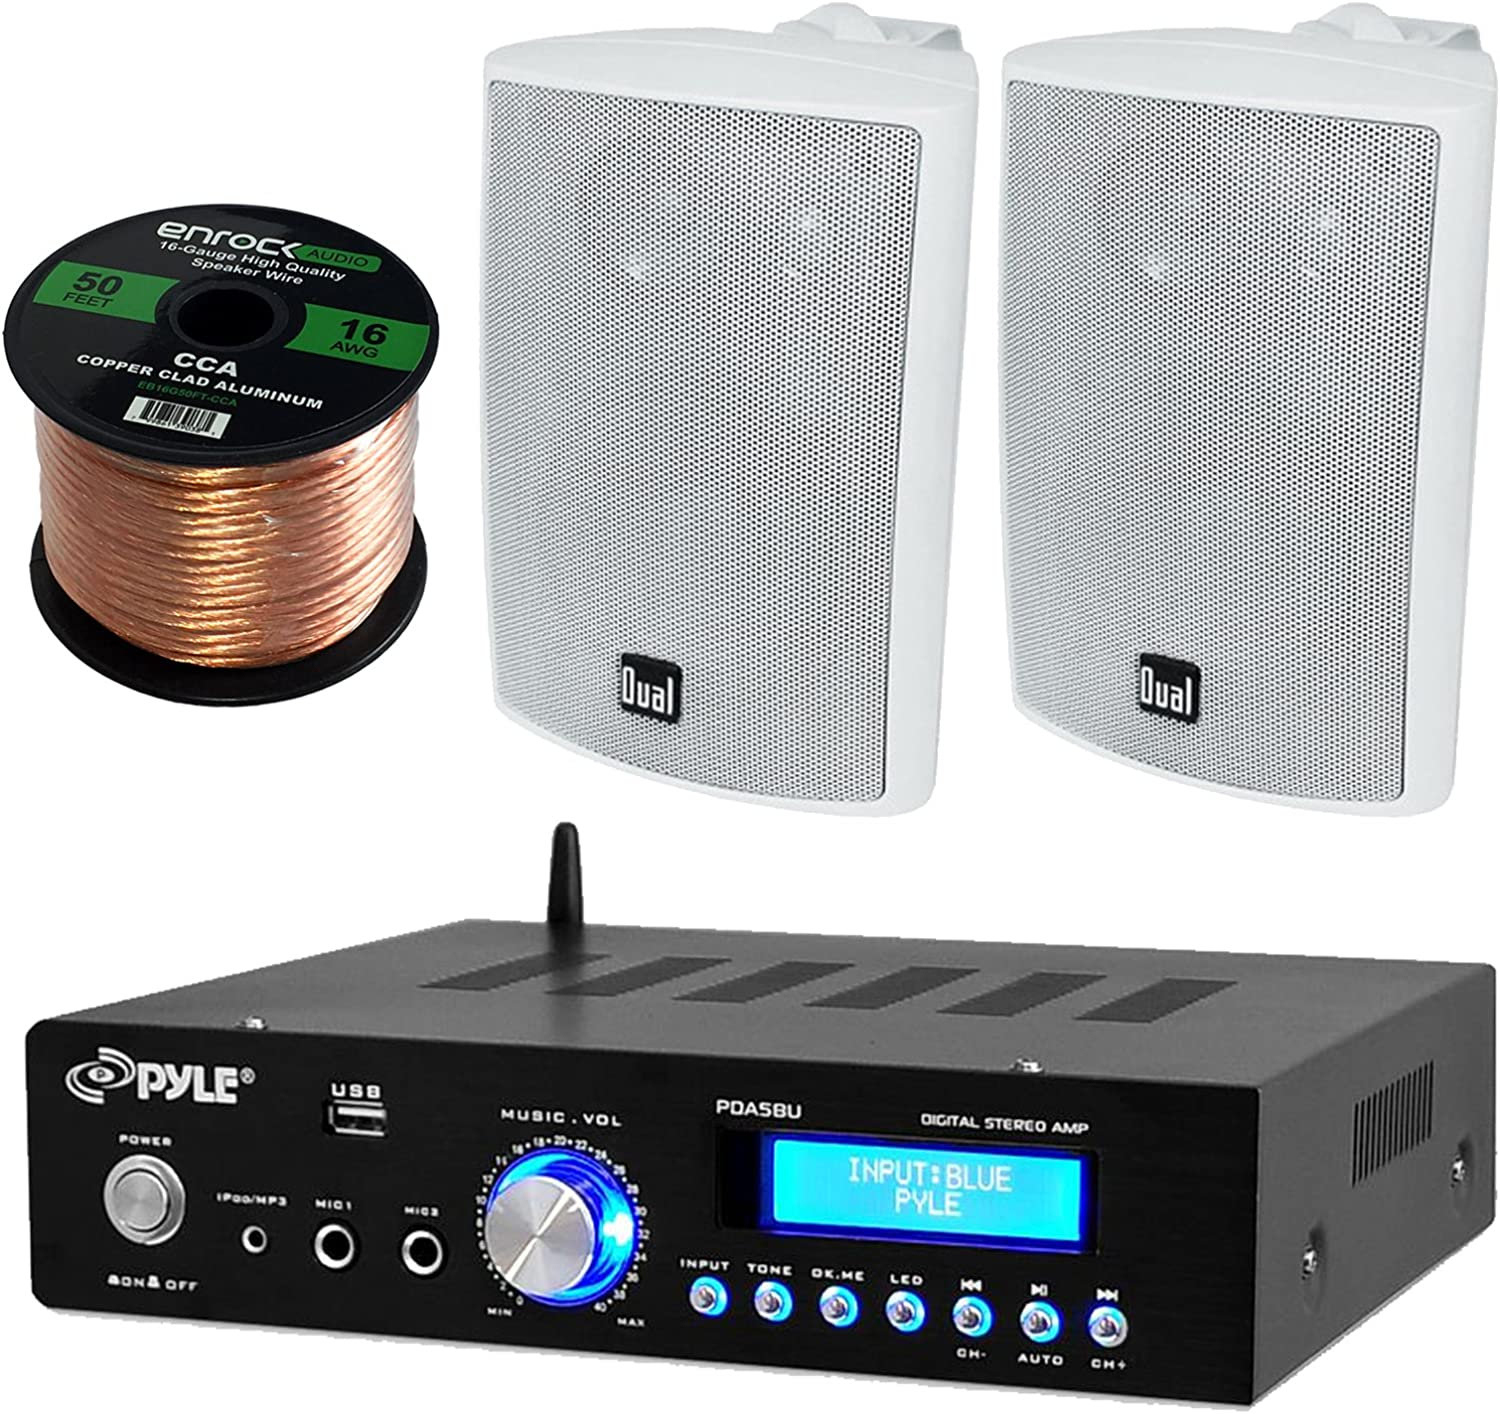 Aux input LCD Display Pyle PDA5BU Amplifier Receiver Stereo USB Flash Reader 200 Watt With Dual LU43PB Indoor//Outdoor Speakers Bundle With Enrock 50ft 16g Speaker Wire Pyle Enrock Dual PDA5BU 16G50FT LU43PB AM//FM Radio Bluetooth